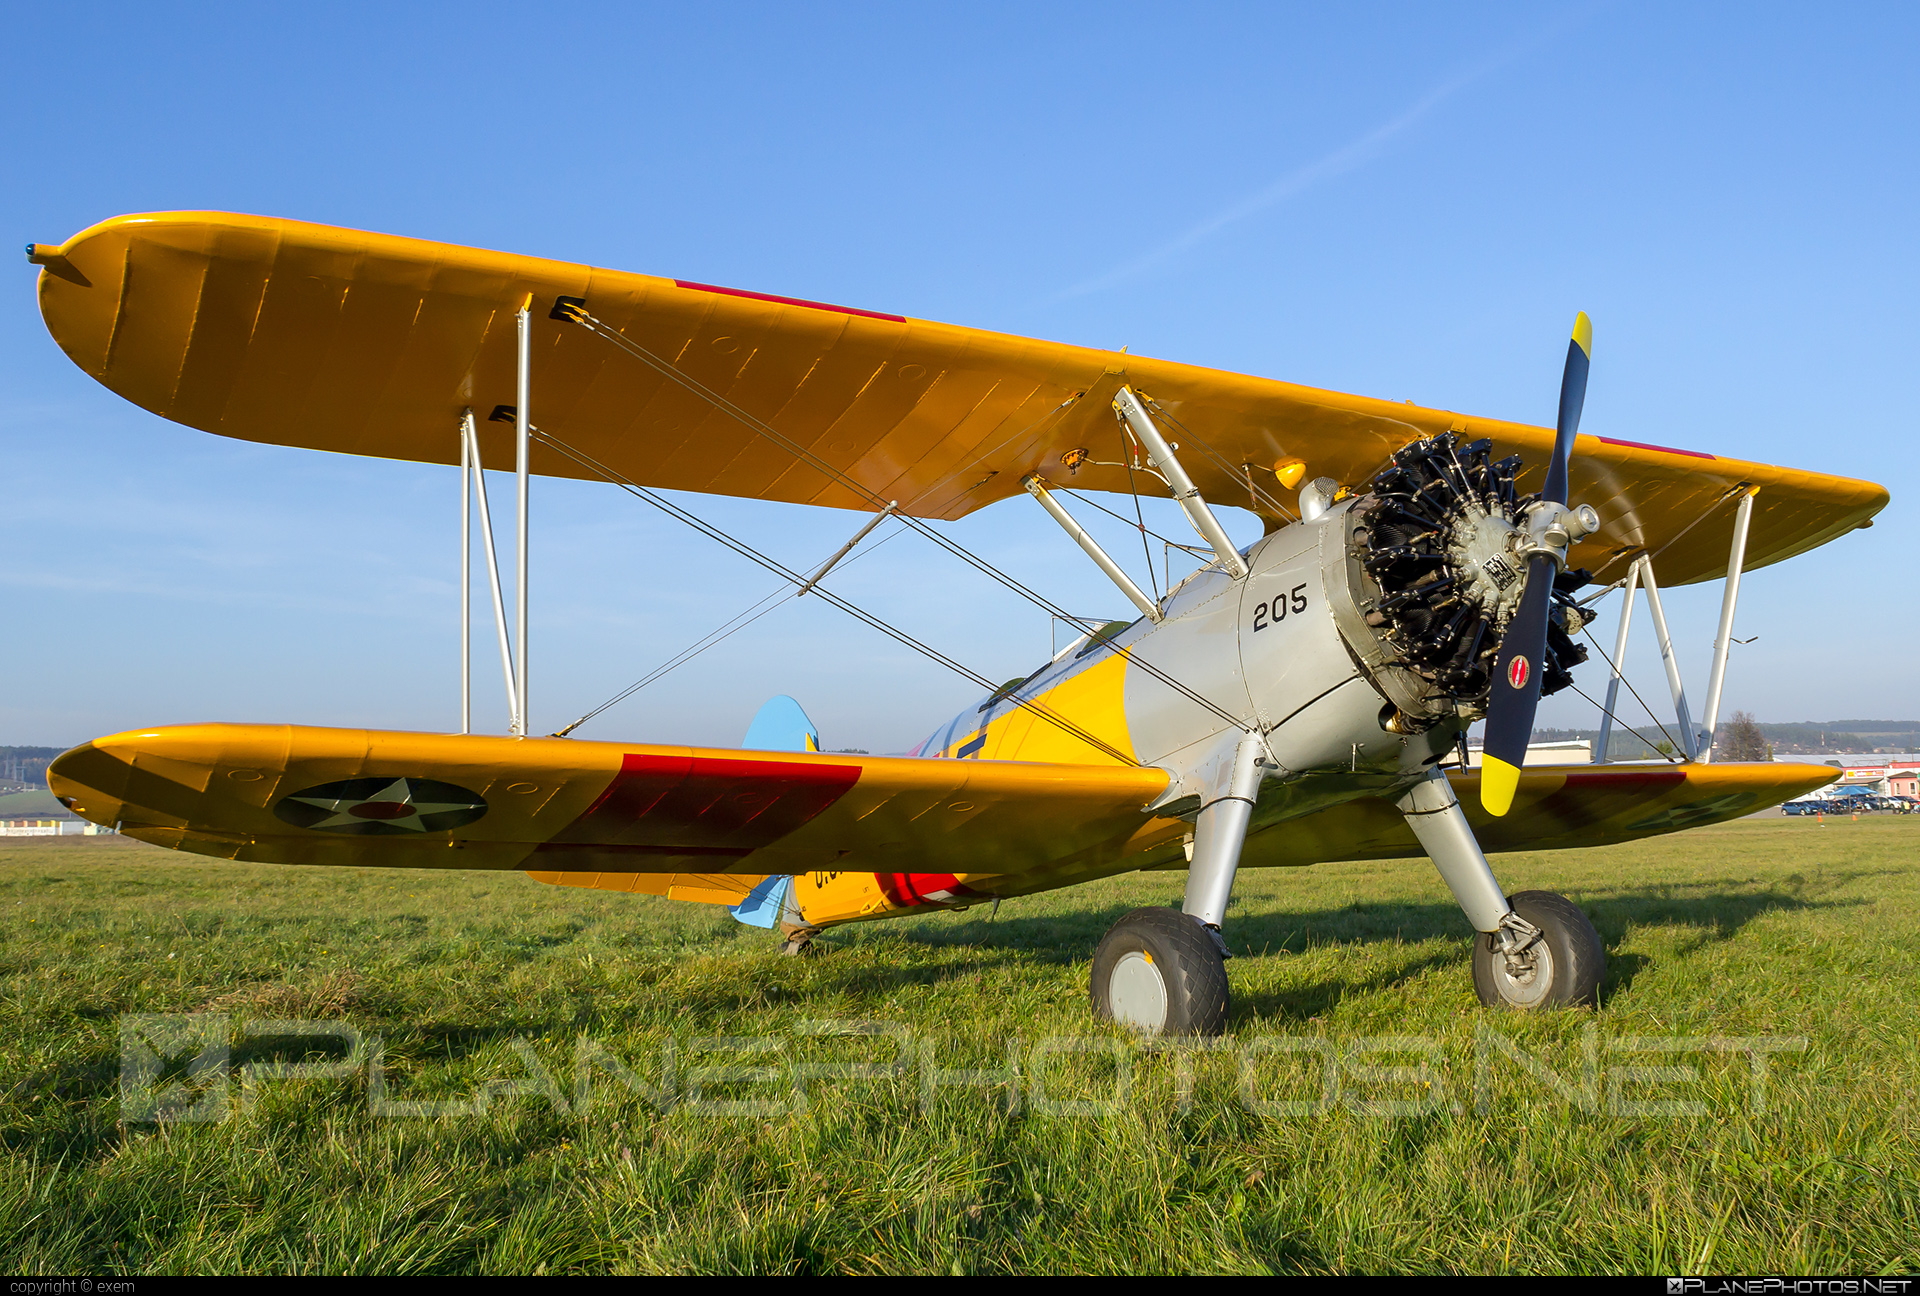 Boeing A75N1 Kaydet - G-BRUJ operated by Private operator #a75n1 #boeing #boeinga75n1 #boeingkaydet #boeingstearman #stearman